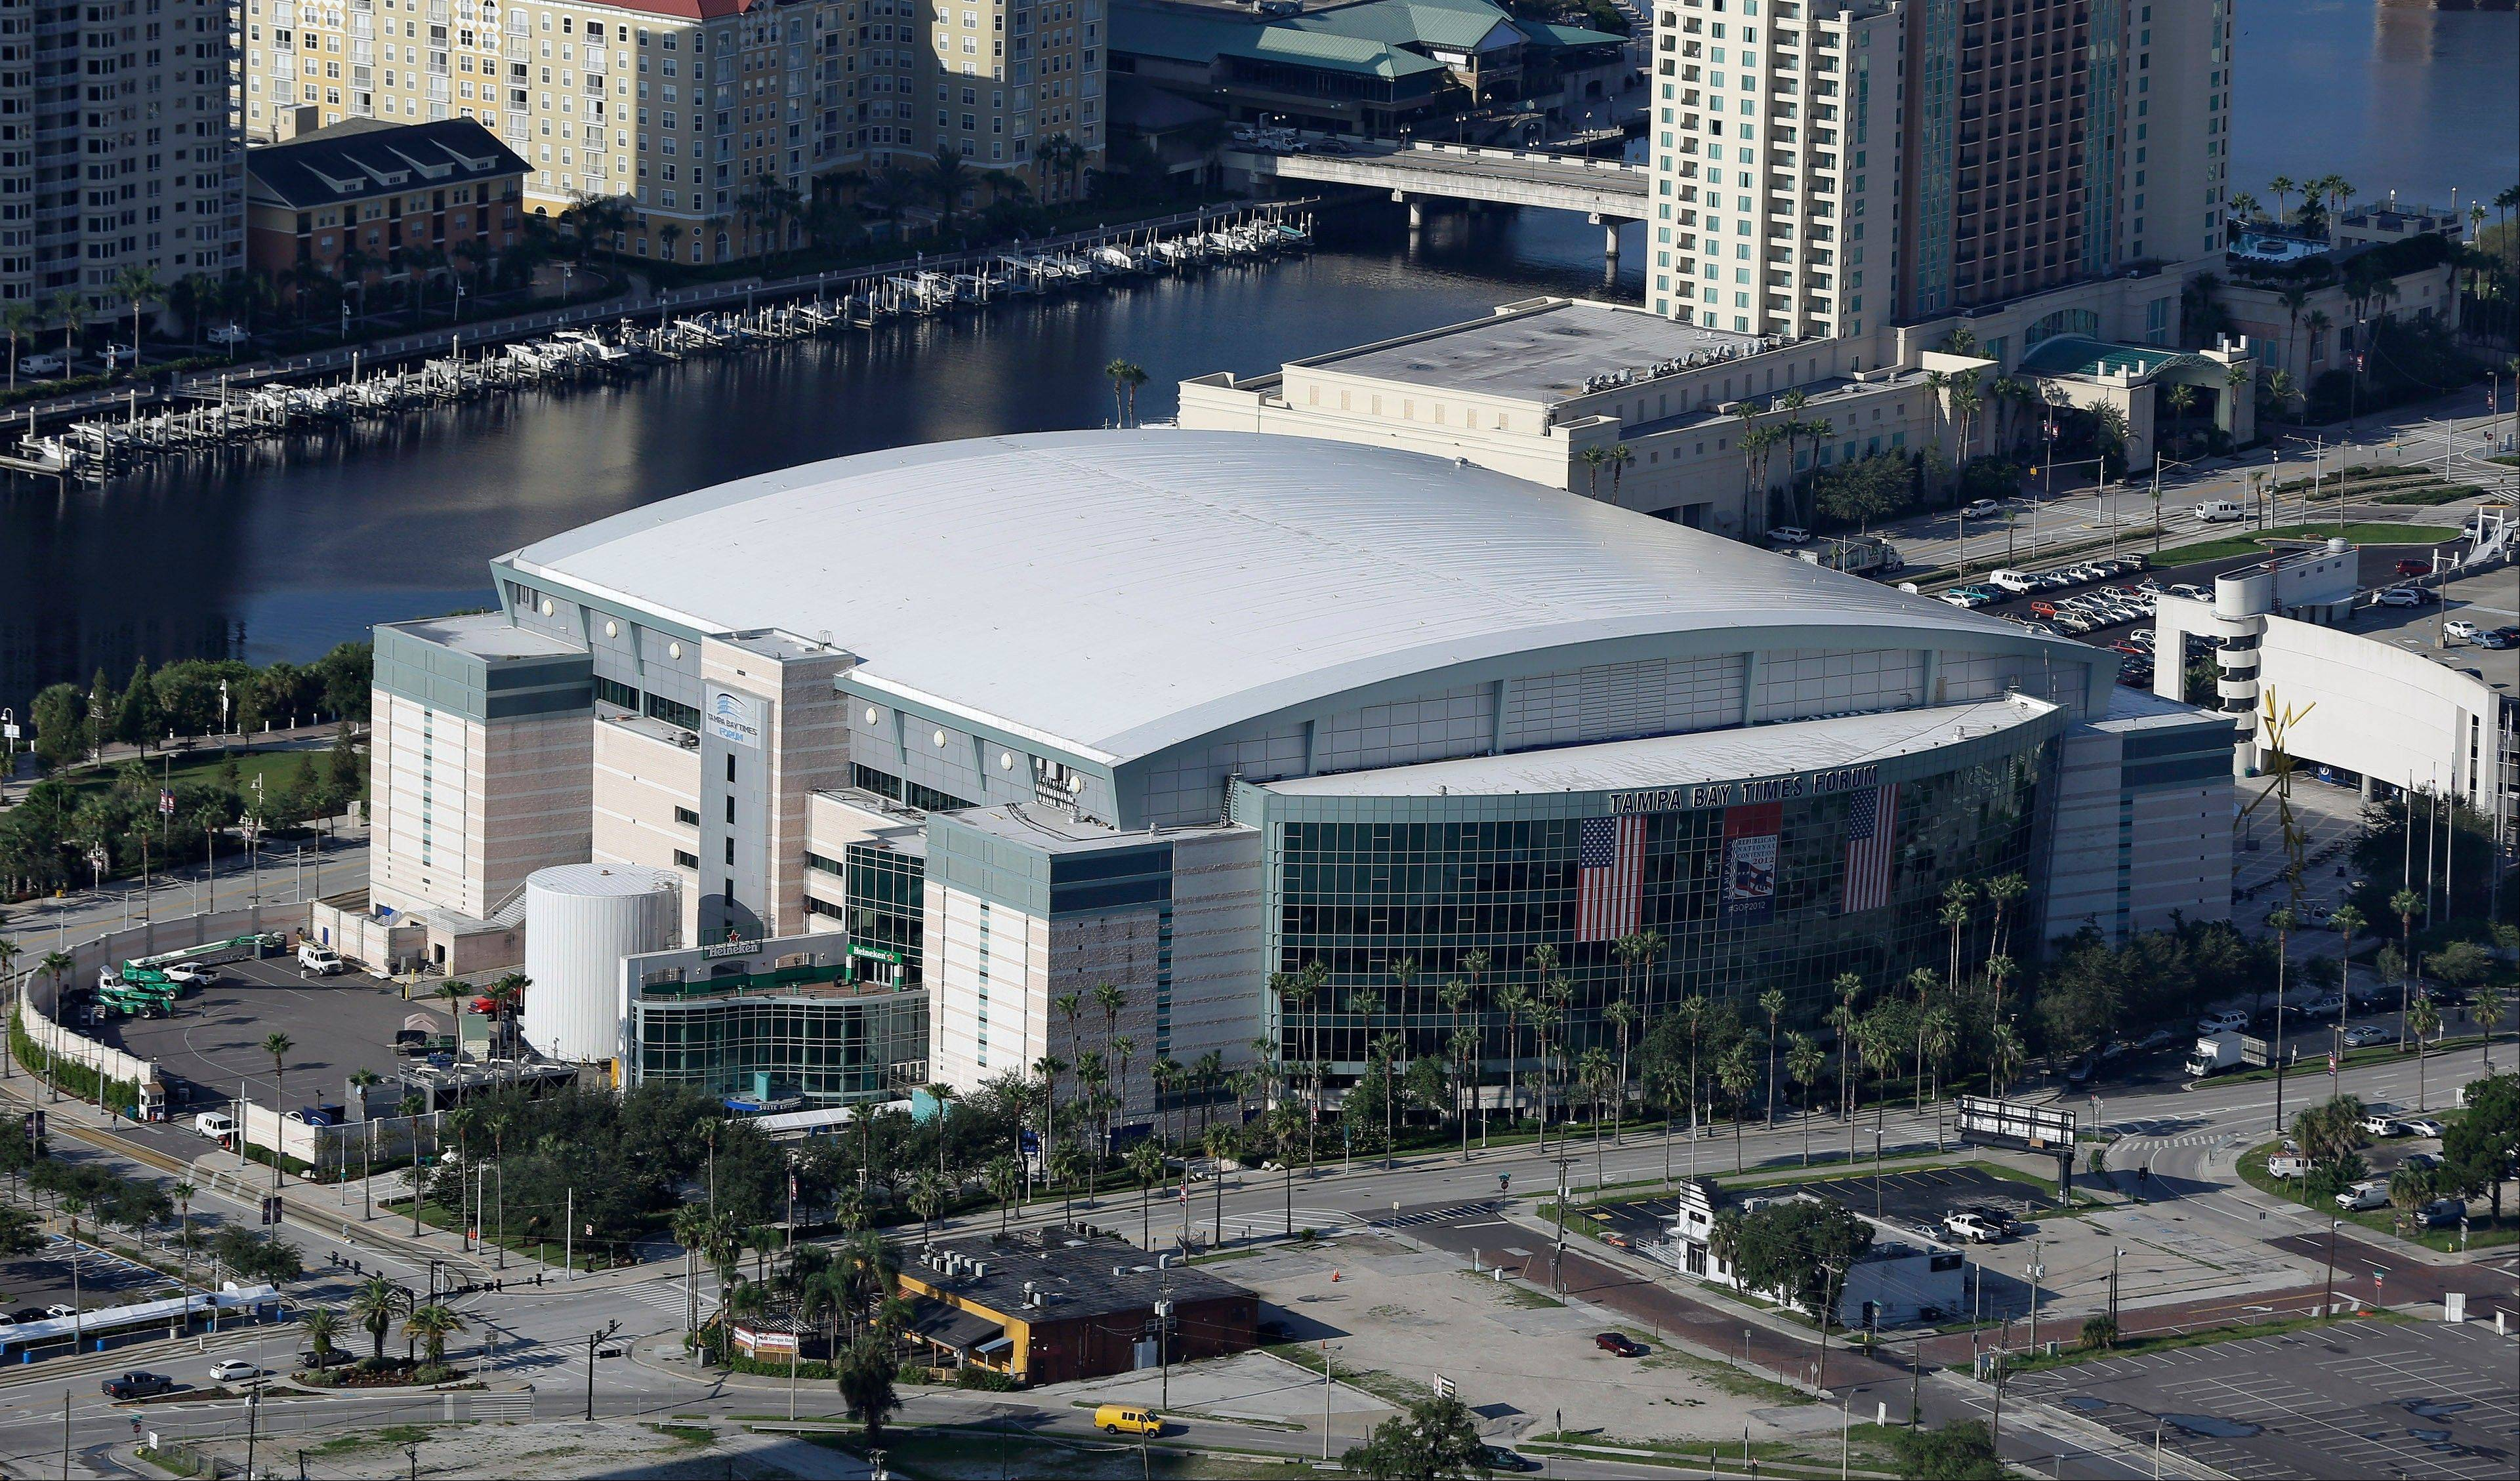 The Tampa Bay Times Forum shown Thursday, Aug. 16, 2012, in Tampa, Fla., is the site of the 2012 Republican National Convention. The 2012 Republican National Convention will be held in Tampa, Florida the week of August 27.